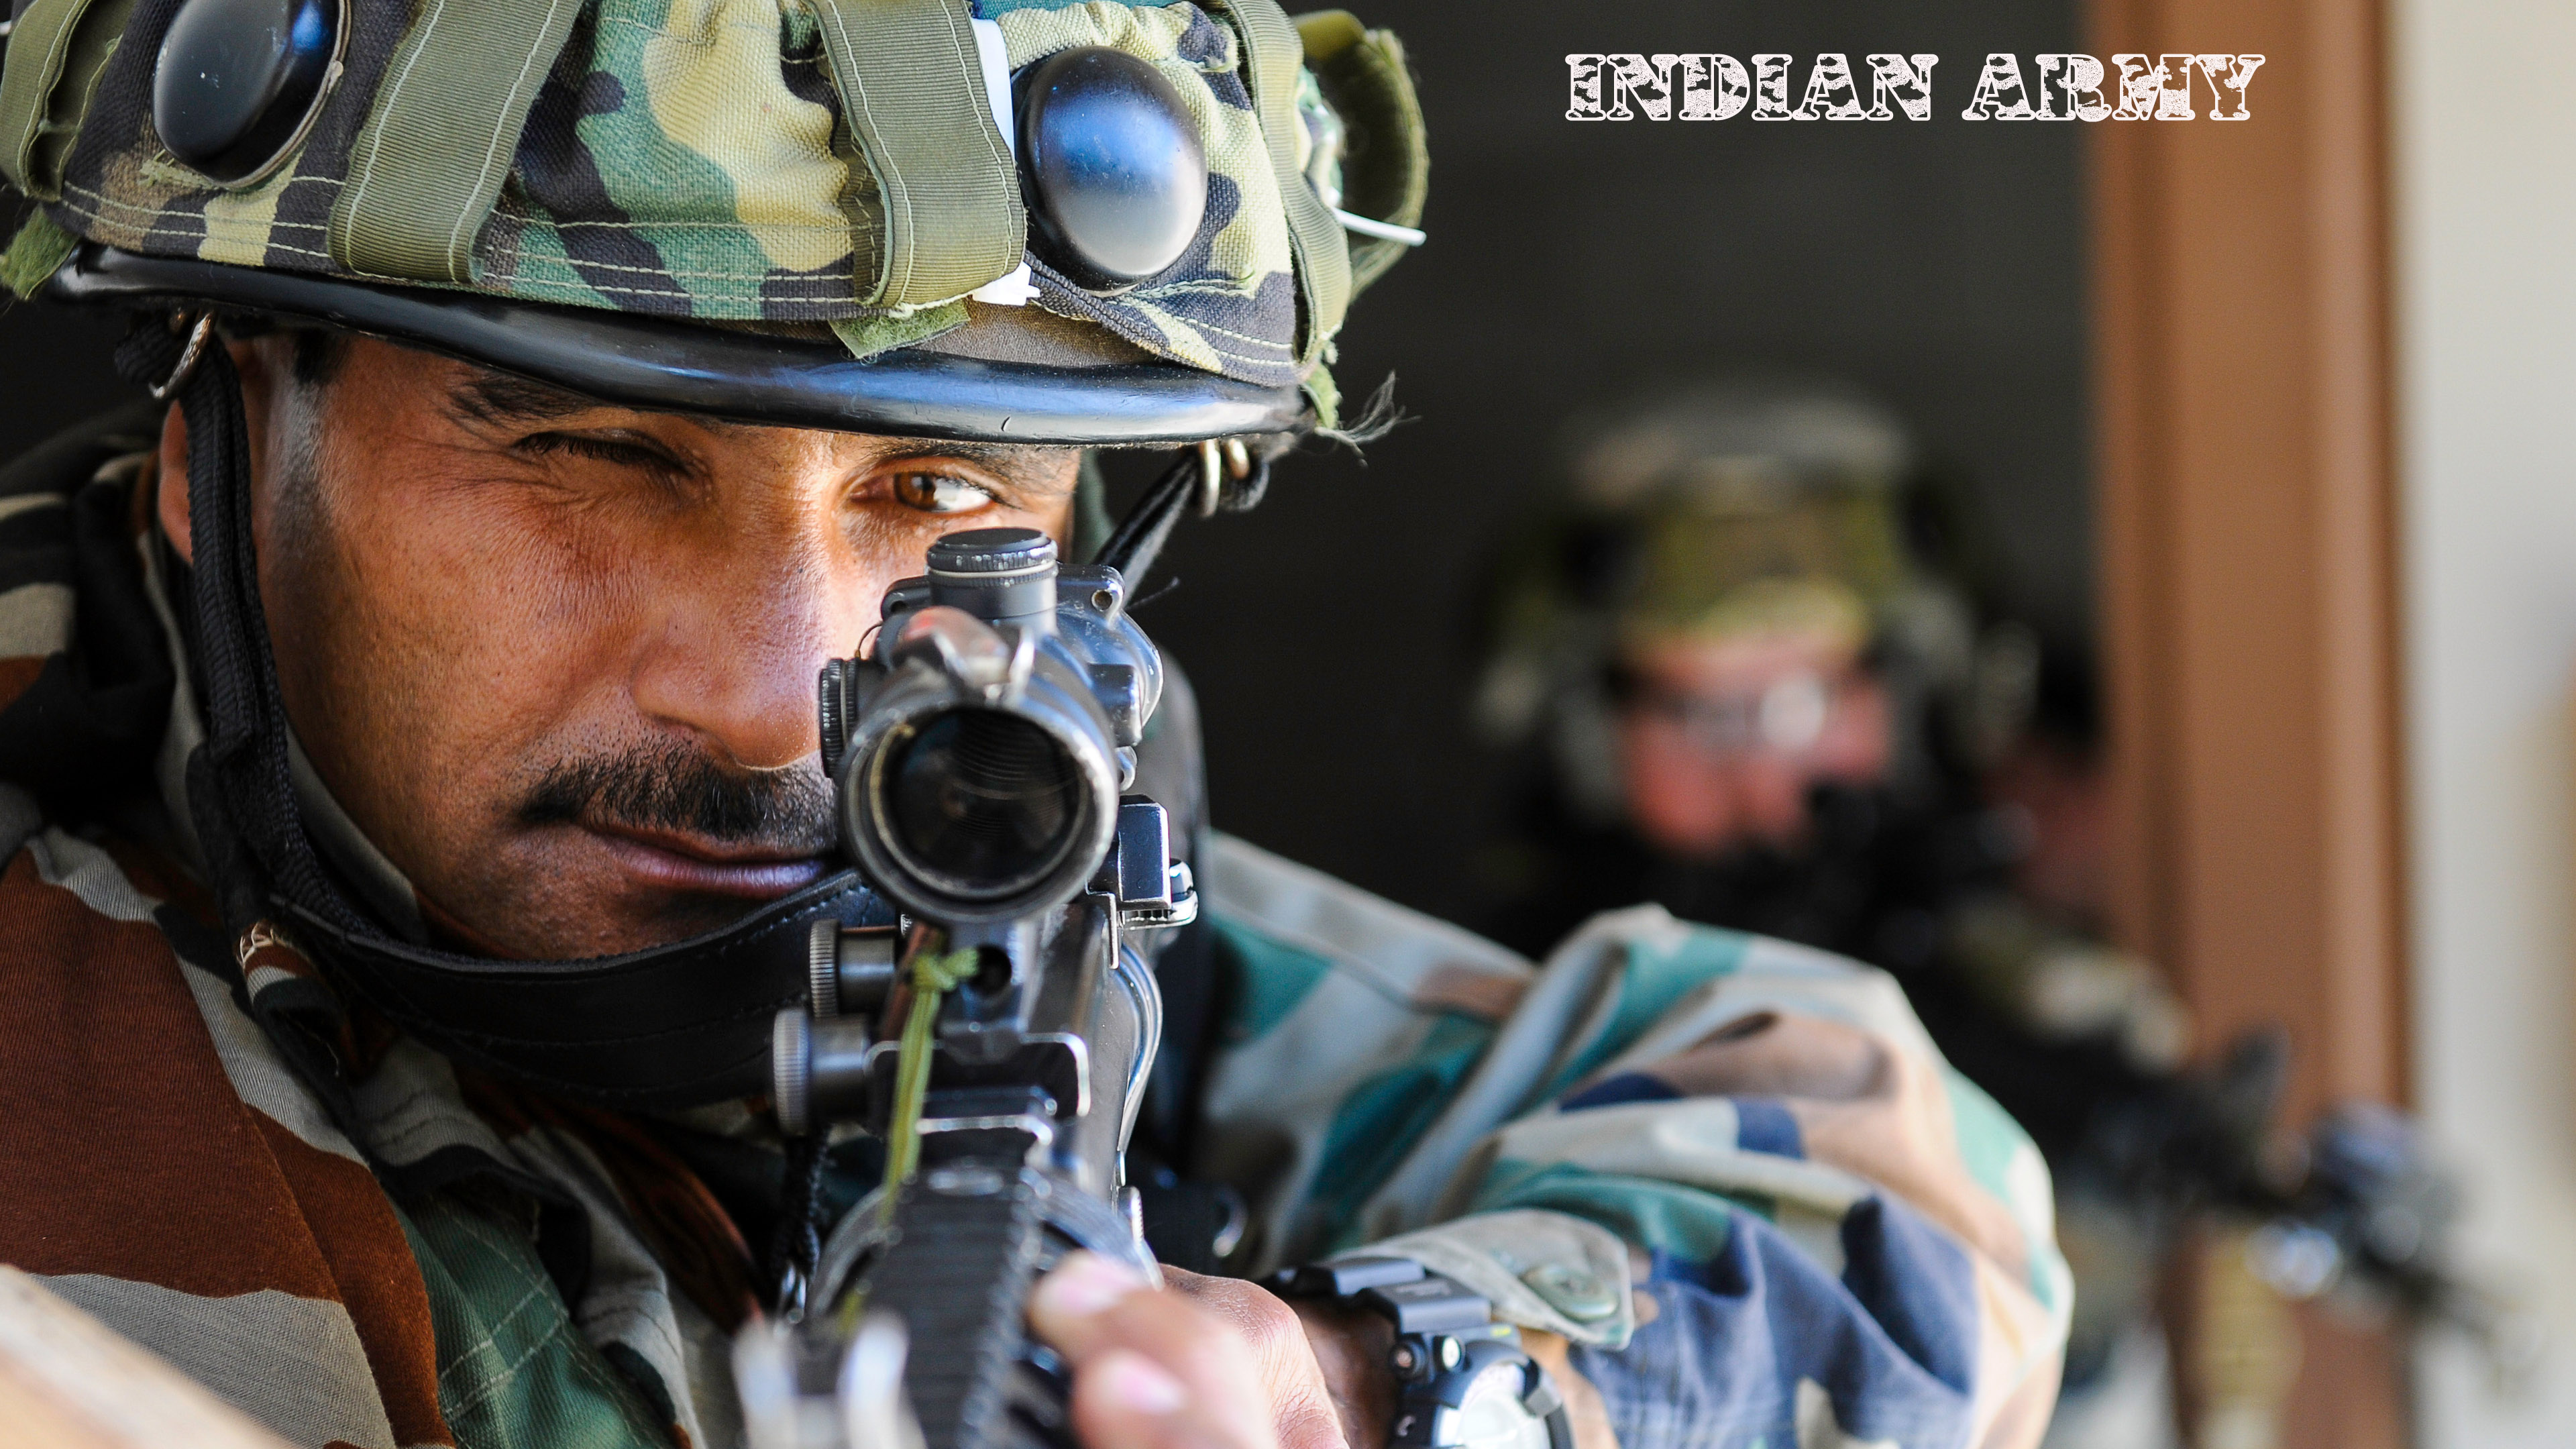 Indian Army Wallpaper In 4k Ultra Hd Hd Wallpapers Wallpapers Download High Resolution Wallpapers